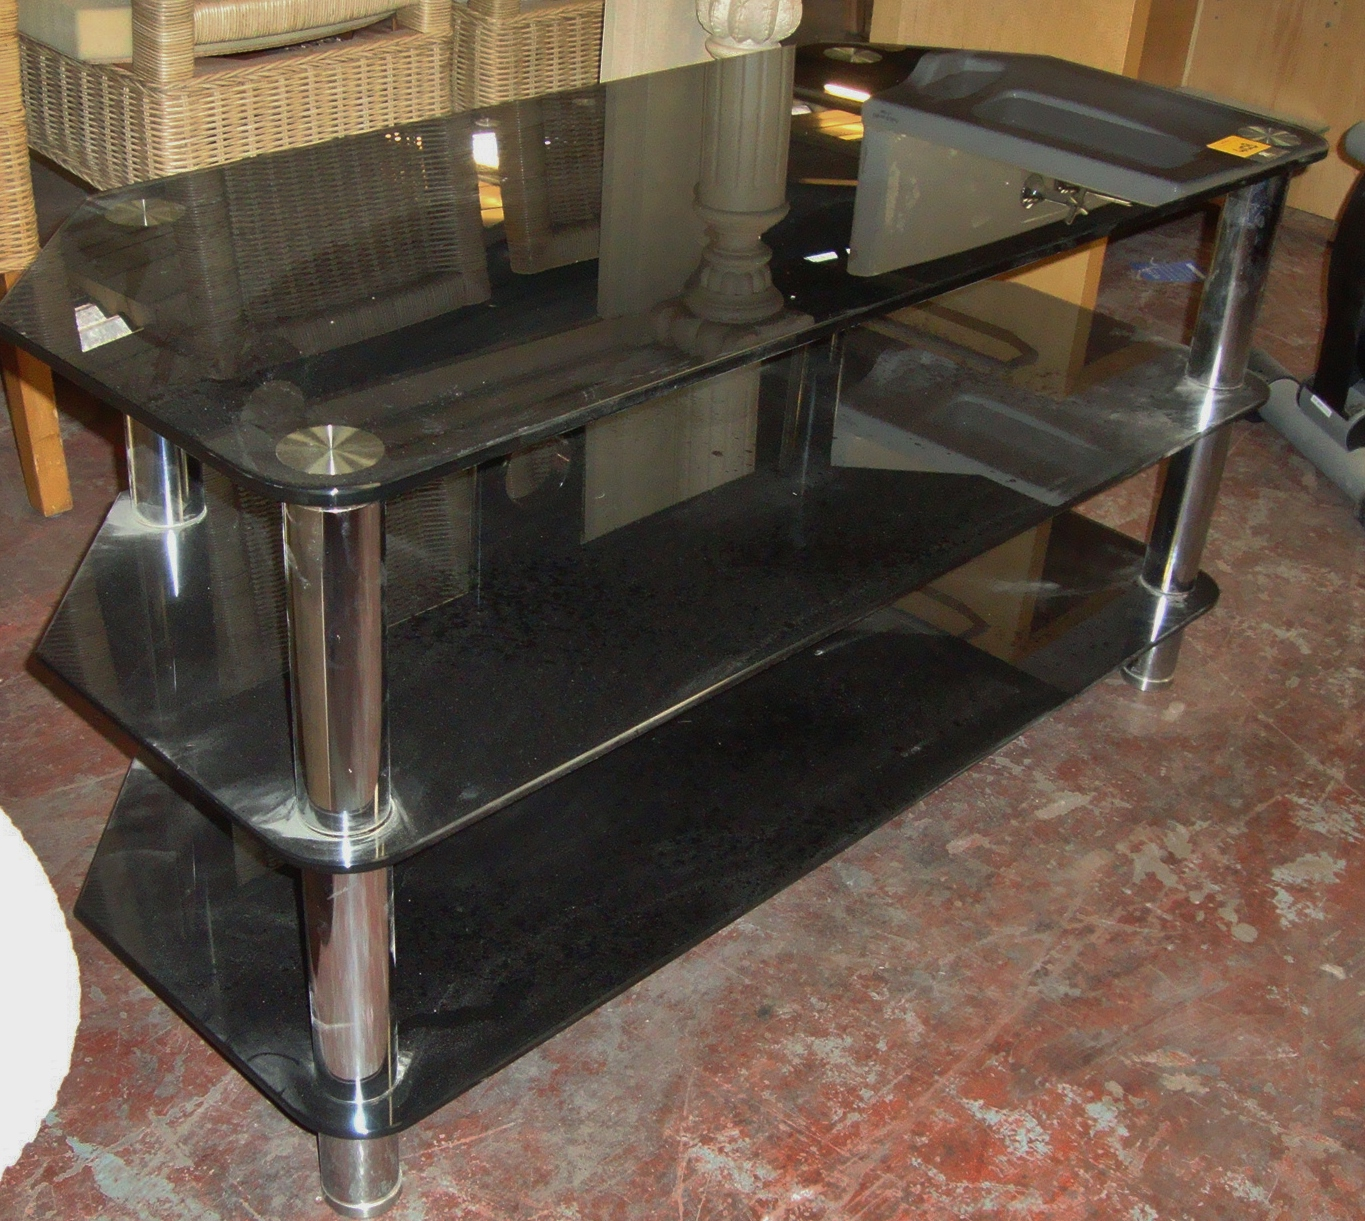 Lot 403 Black glass & silver metal 3 shelf AV stand #926839